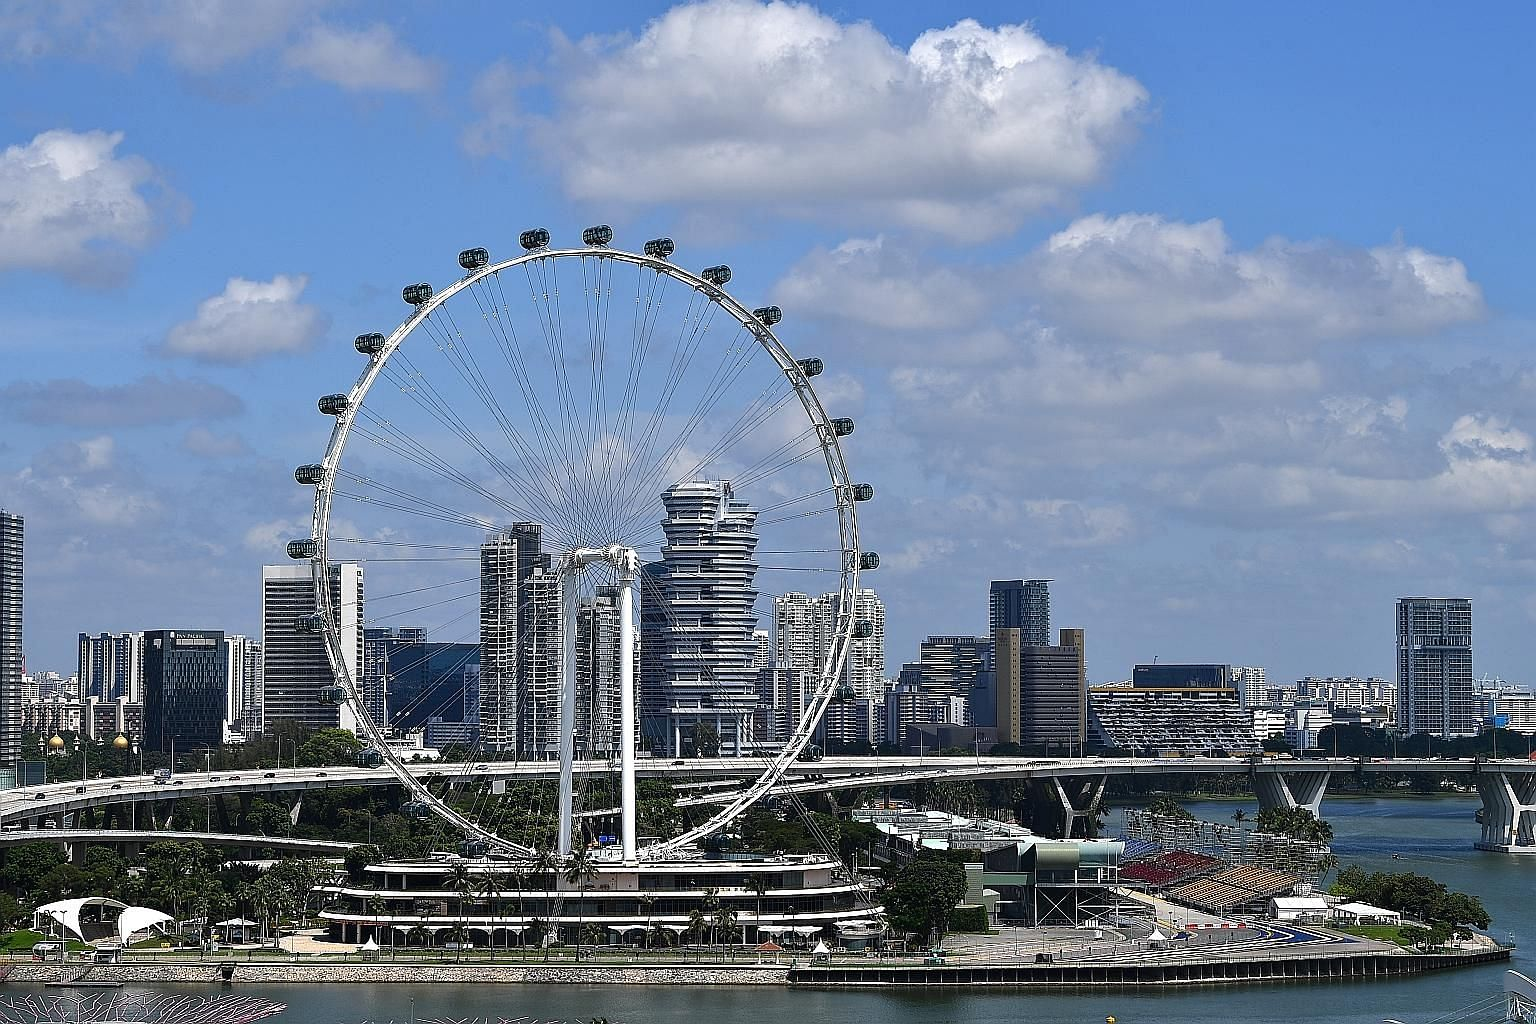 The flight operations of the Singapore Flyer were suspended by the Building and Construction Authority on Nov 19 last year due to a glitch affecting a section of the outer layer of one of the spoke cables.